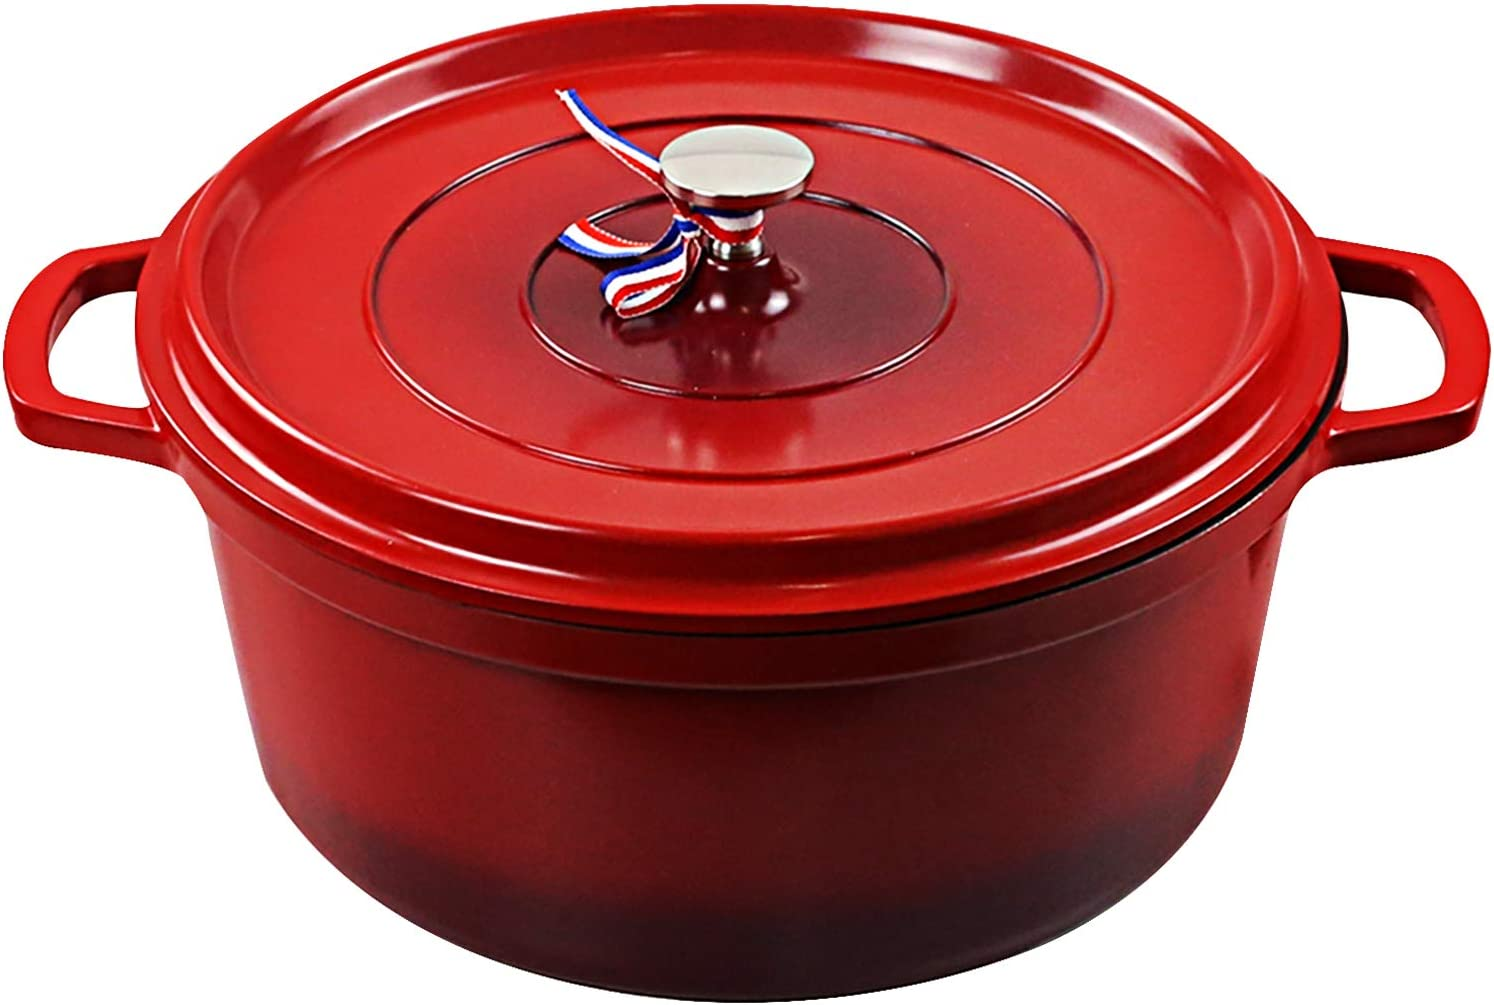 Cookware Cast Iron Aluminum Dutch Oven with Lid, Non Stick Round Casserole Dish, Lightweight,Moving it around easy,For all Heat Source&Induction cooker,Quick heating,Oven safe up to 450°F, 6.8 Quart Pot